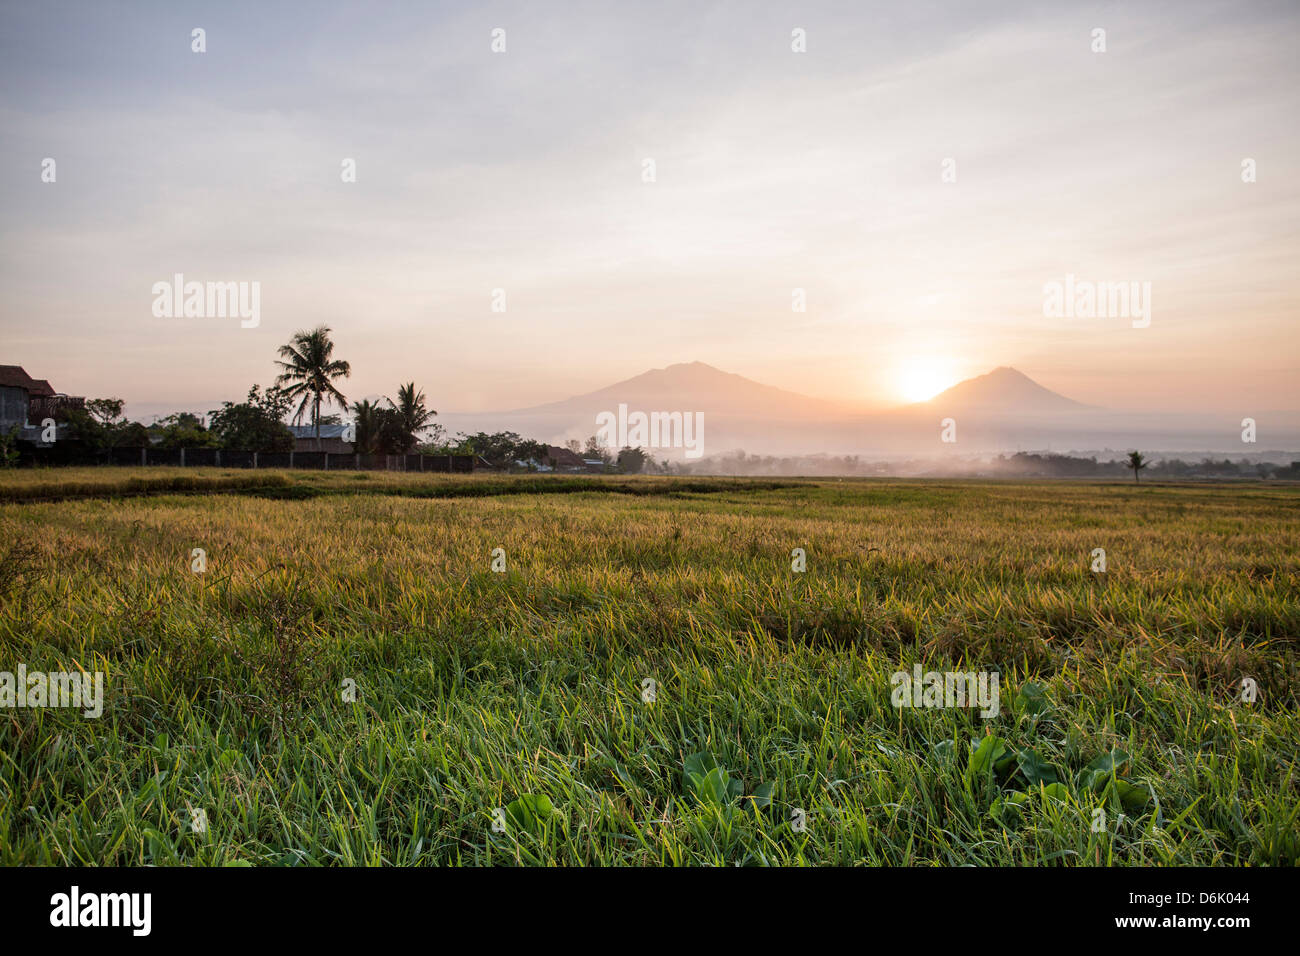 Rice field and volcanoes, Java, Indonesia, Southeast Asia, Asia - Stock Image